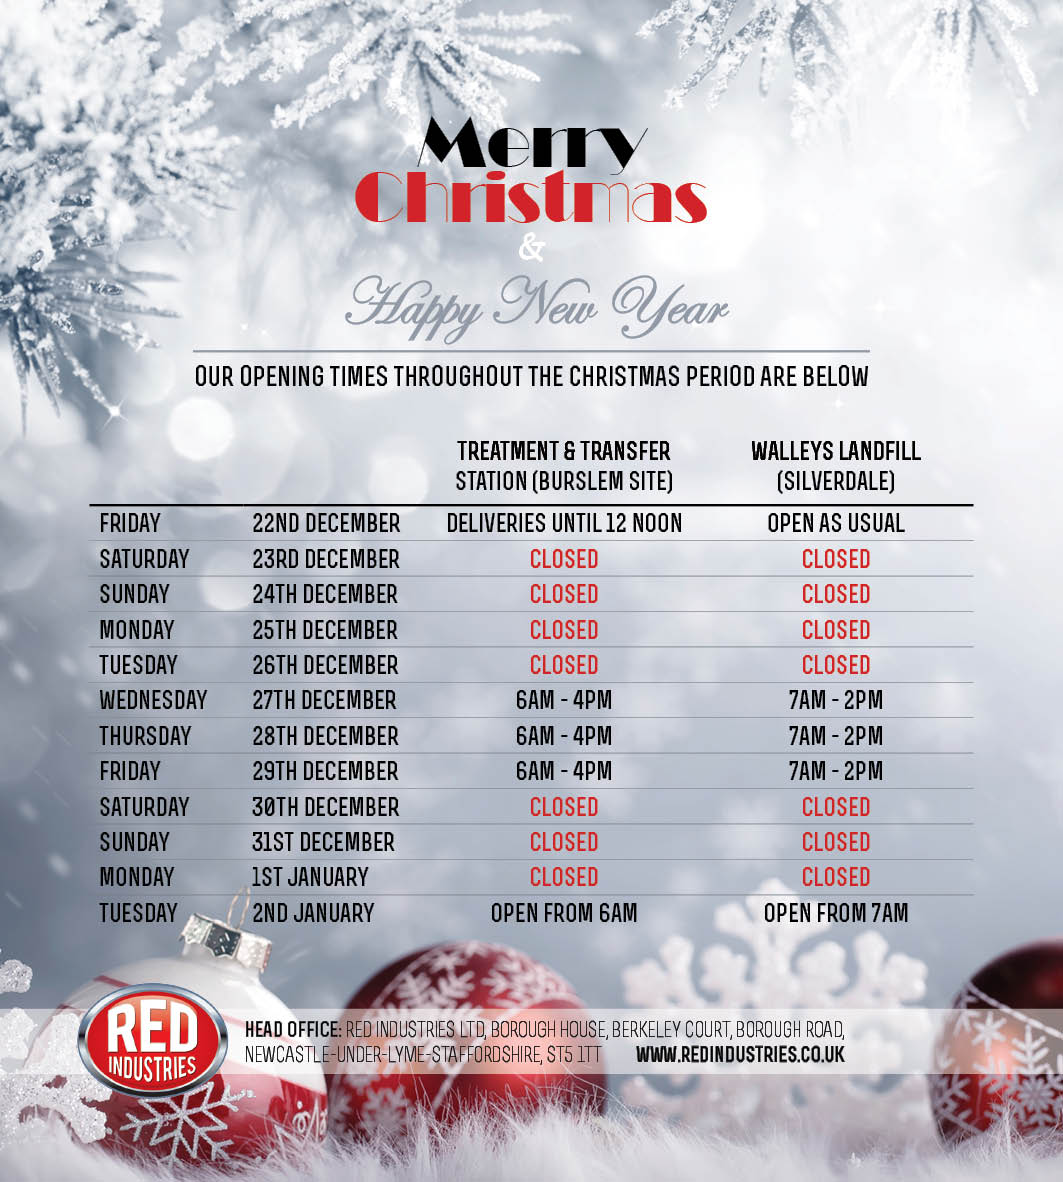 Red Industries Christmas Opening Times 2017